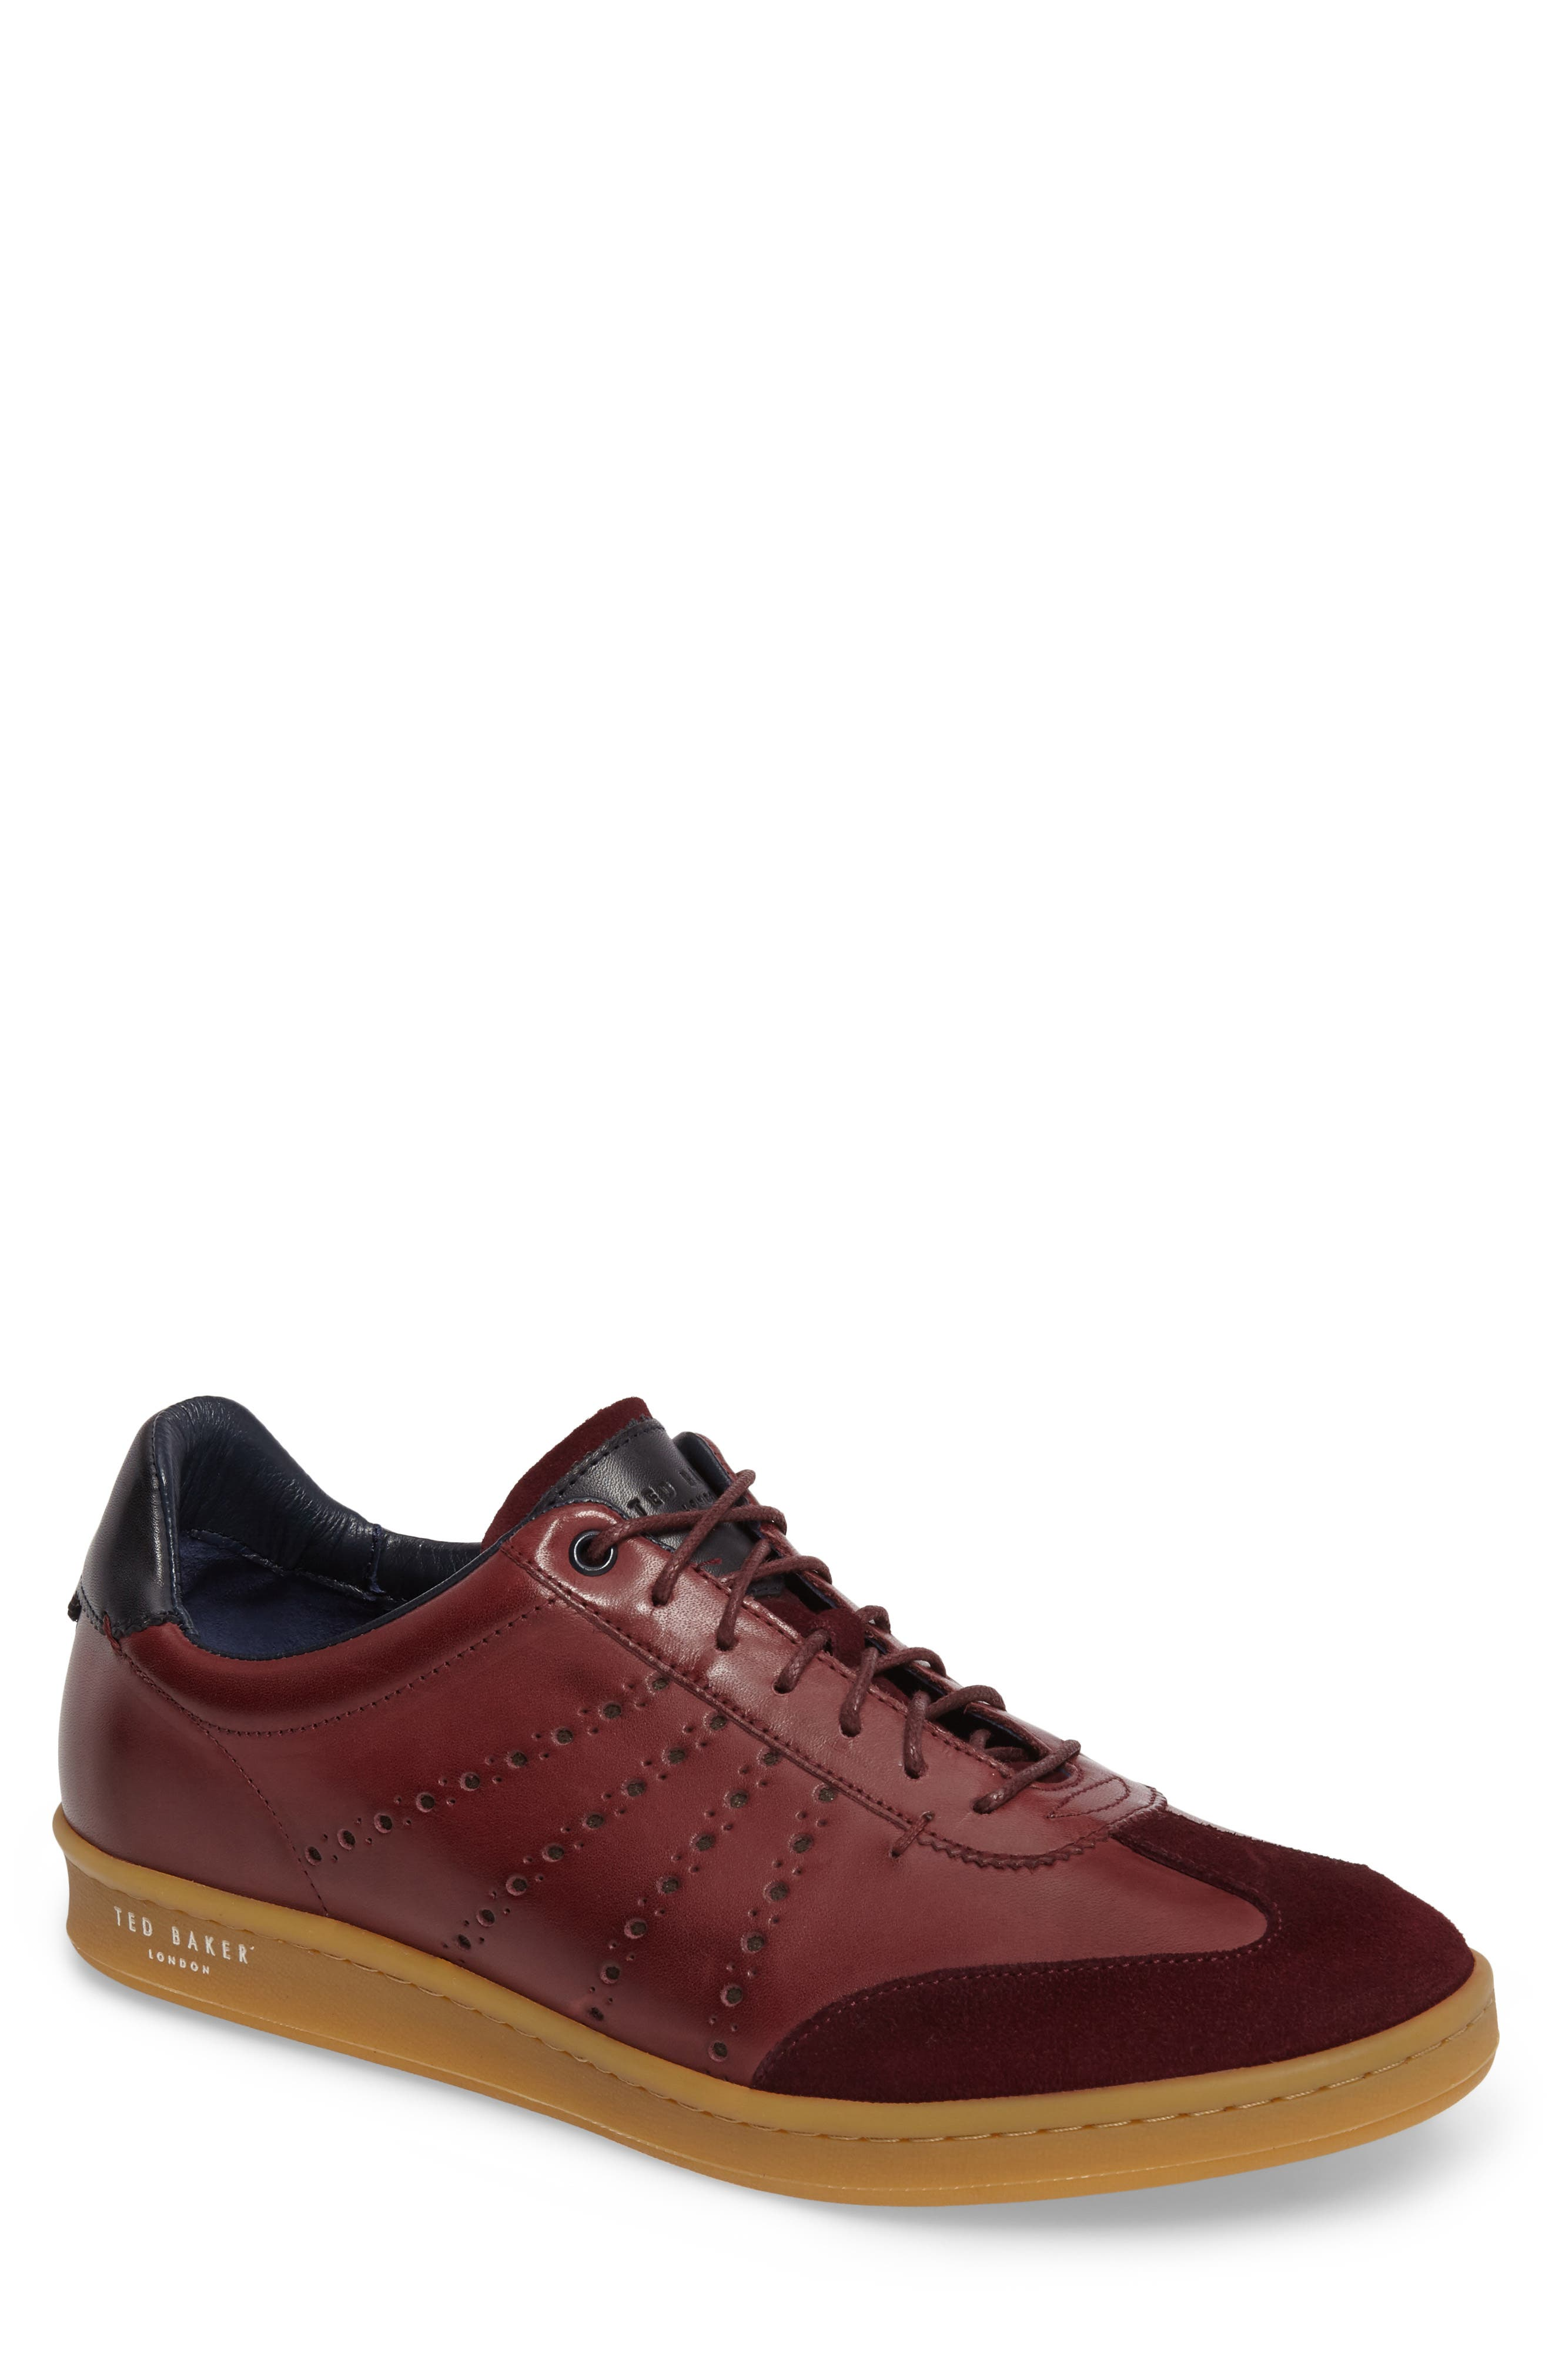 Orlee Sneaker,                             Main thumbnail 1, color,                             Dark Red Leather